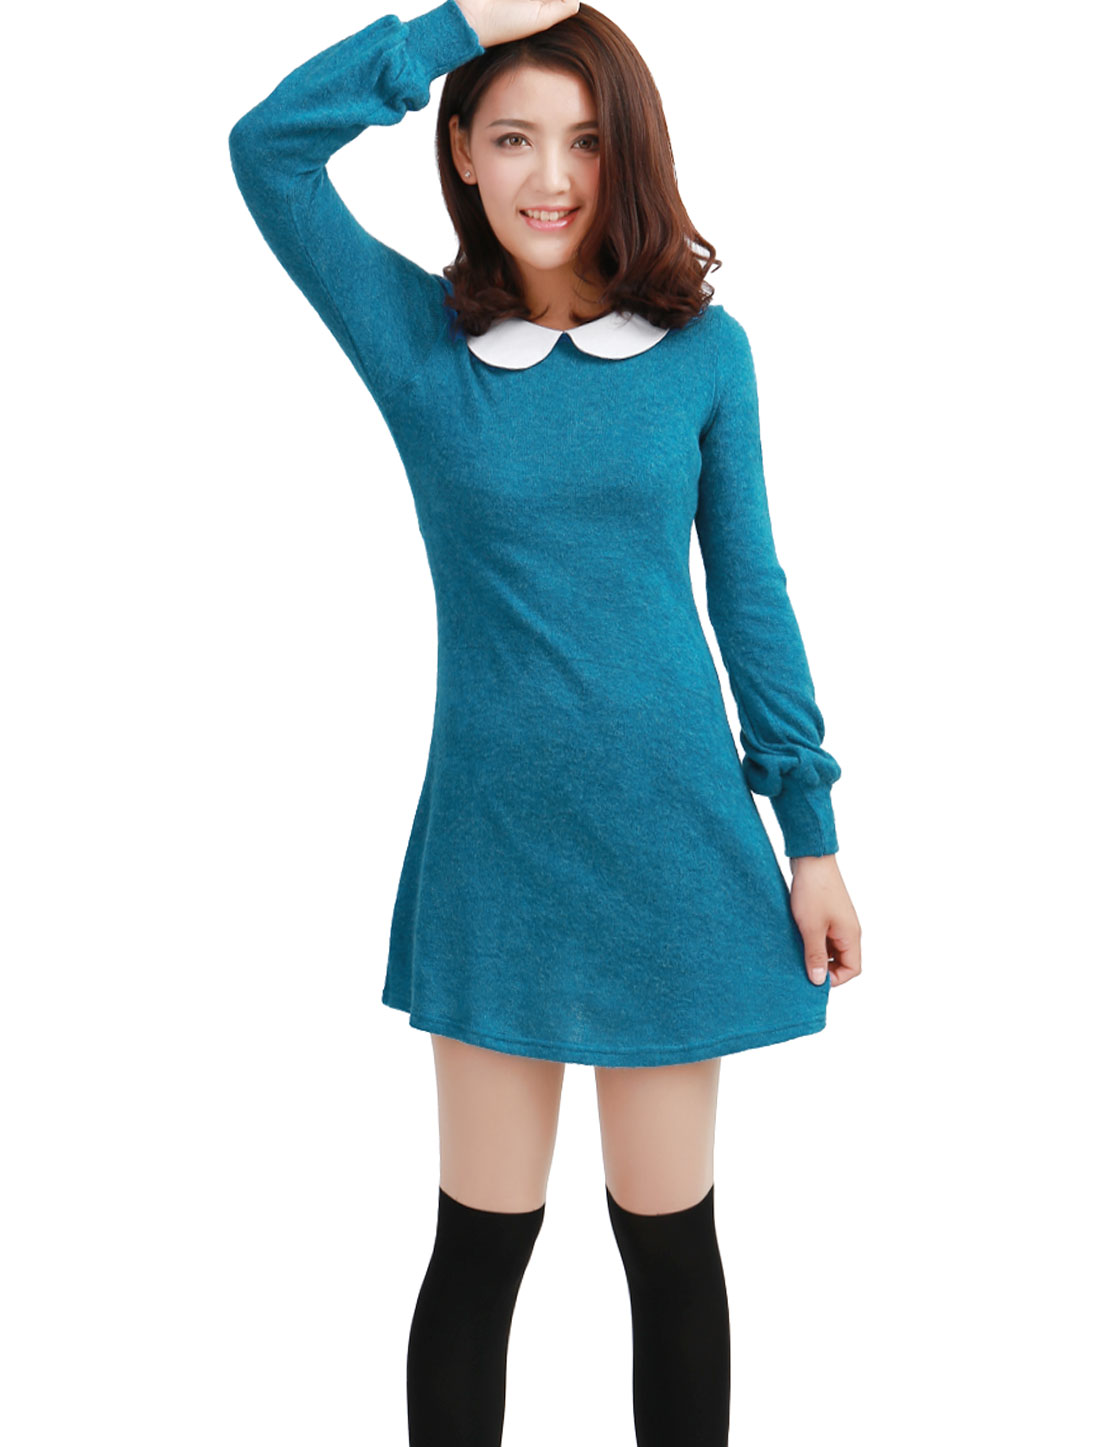 Woman Chic Doll Collar Long Sleeve Turquoise Knitted Mini Dress XS